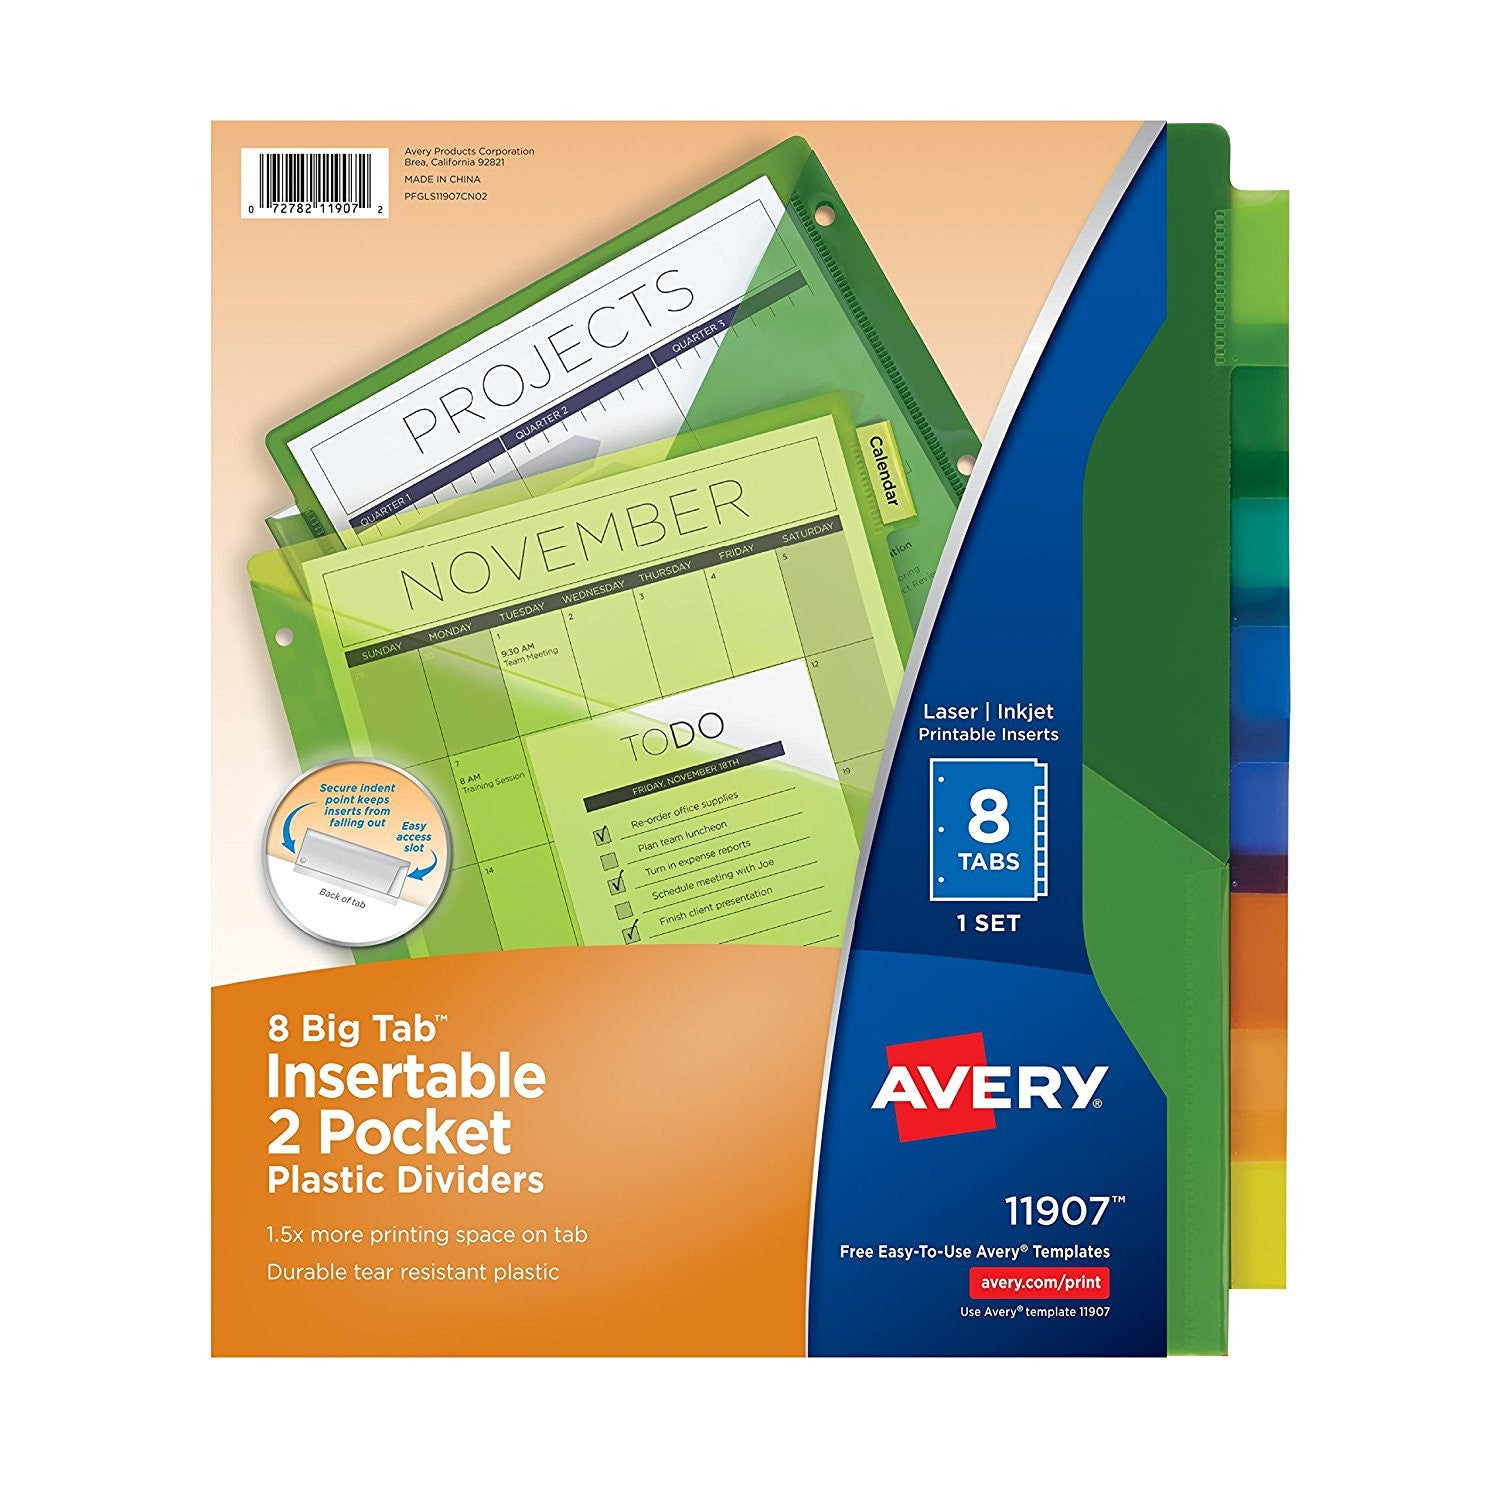 Avery Big Tab Two-Pocket Insertable Plastic Dividers, 8-Tab Set, 1 Set (11907)